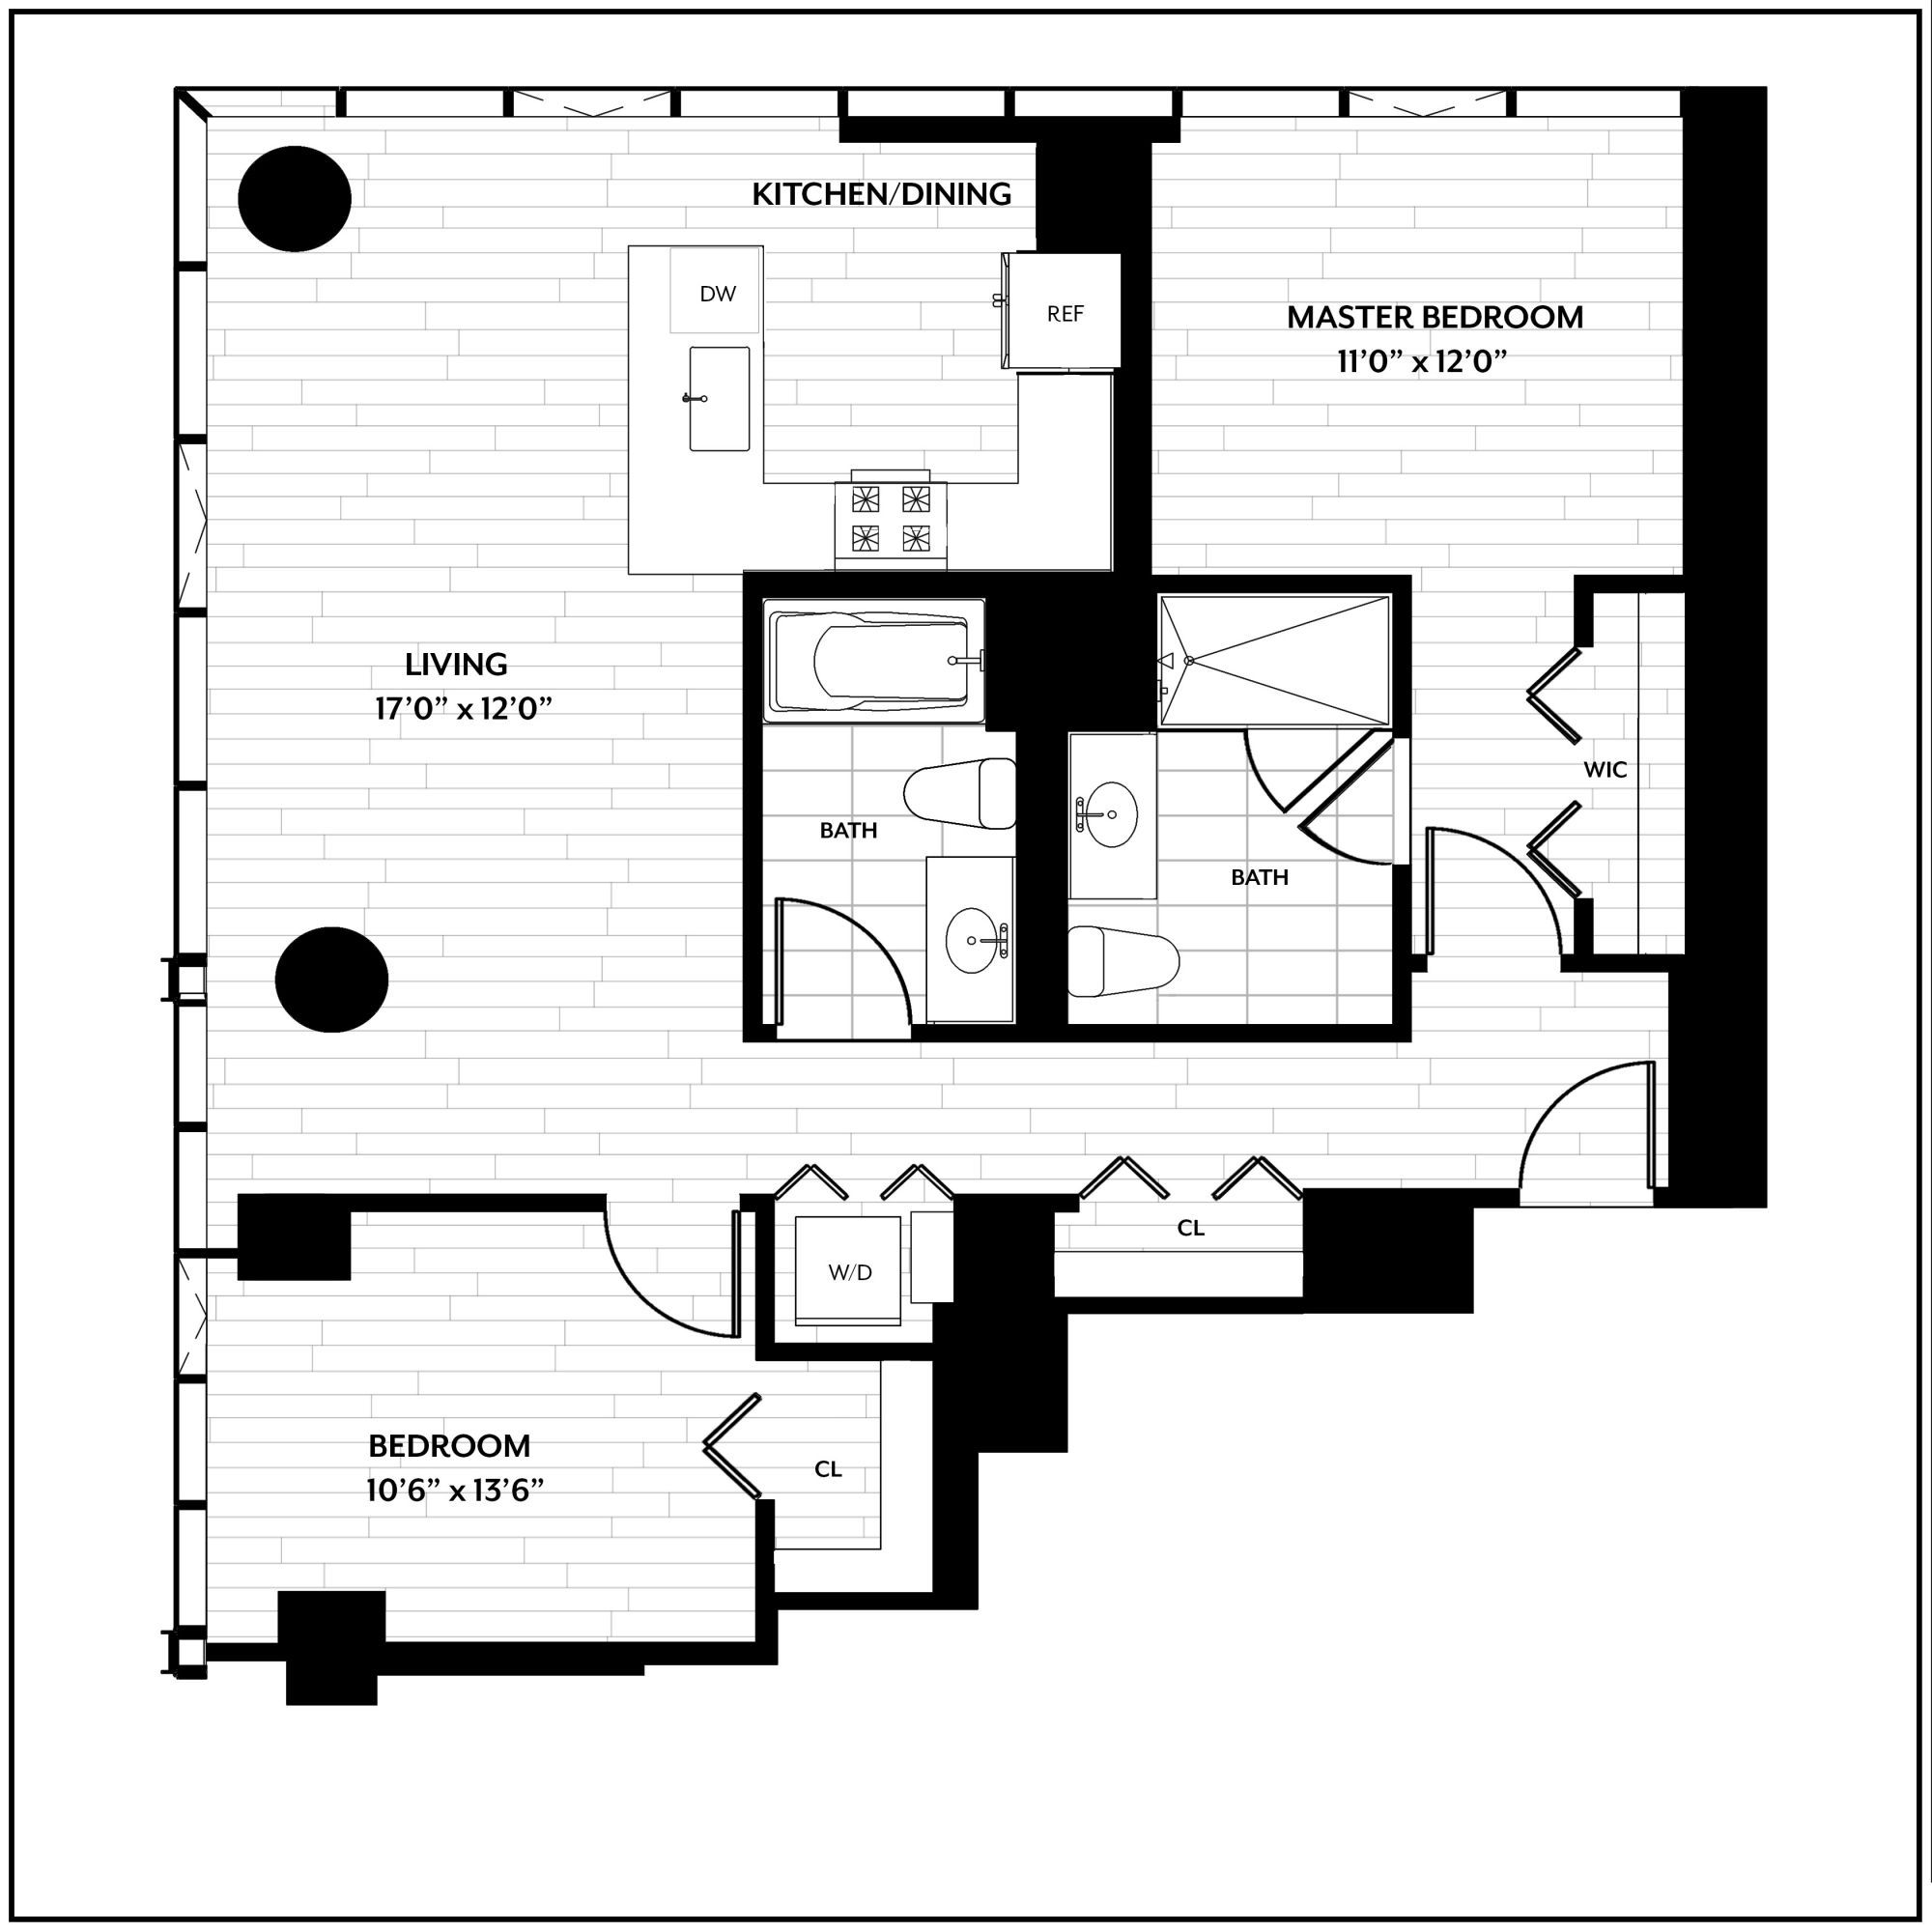 Pin By Spencer Mcneil On Residential Plans In